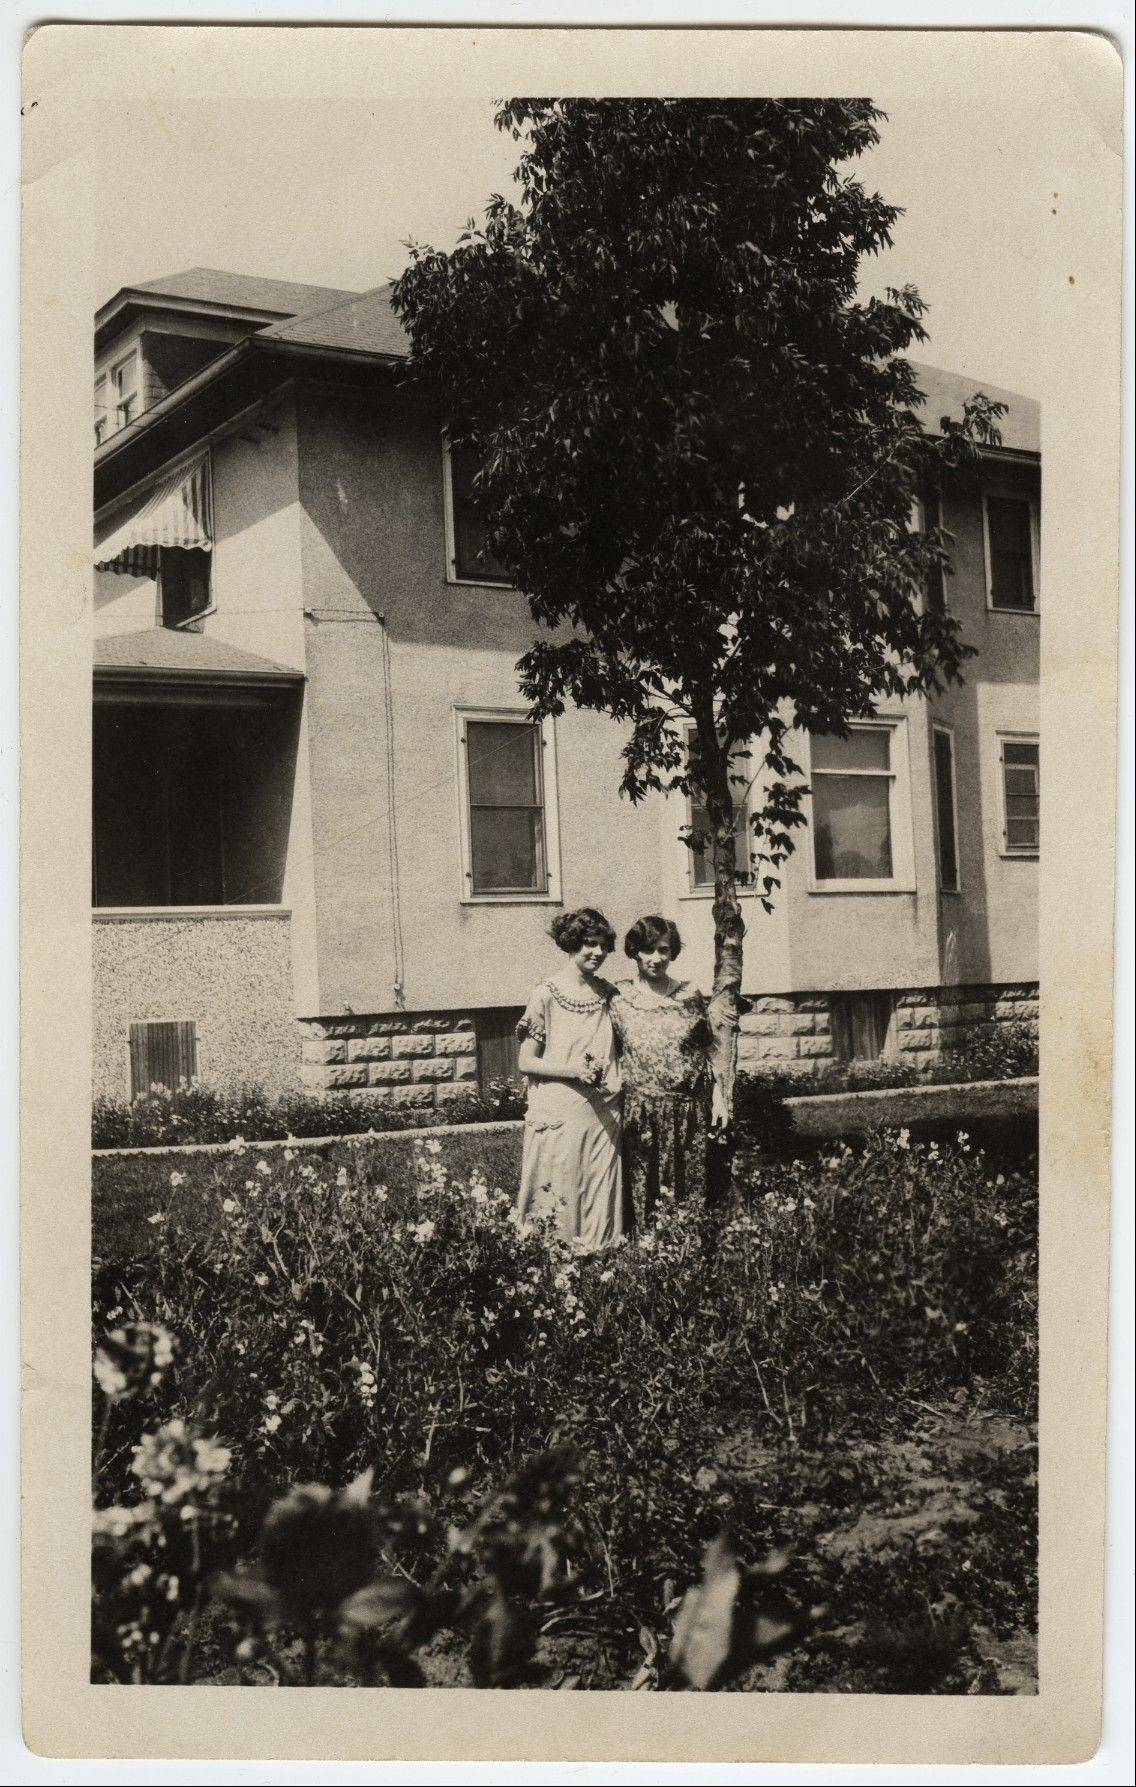 Magdalene Oltrogge Meyn and a friend stand near the Arlington Heights home that was originally stuccoed and later sided.